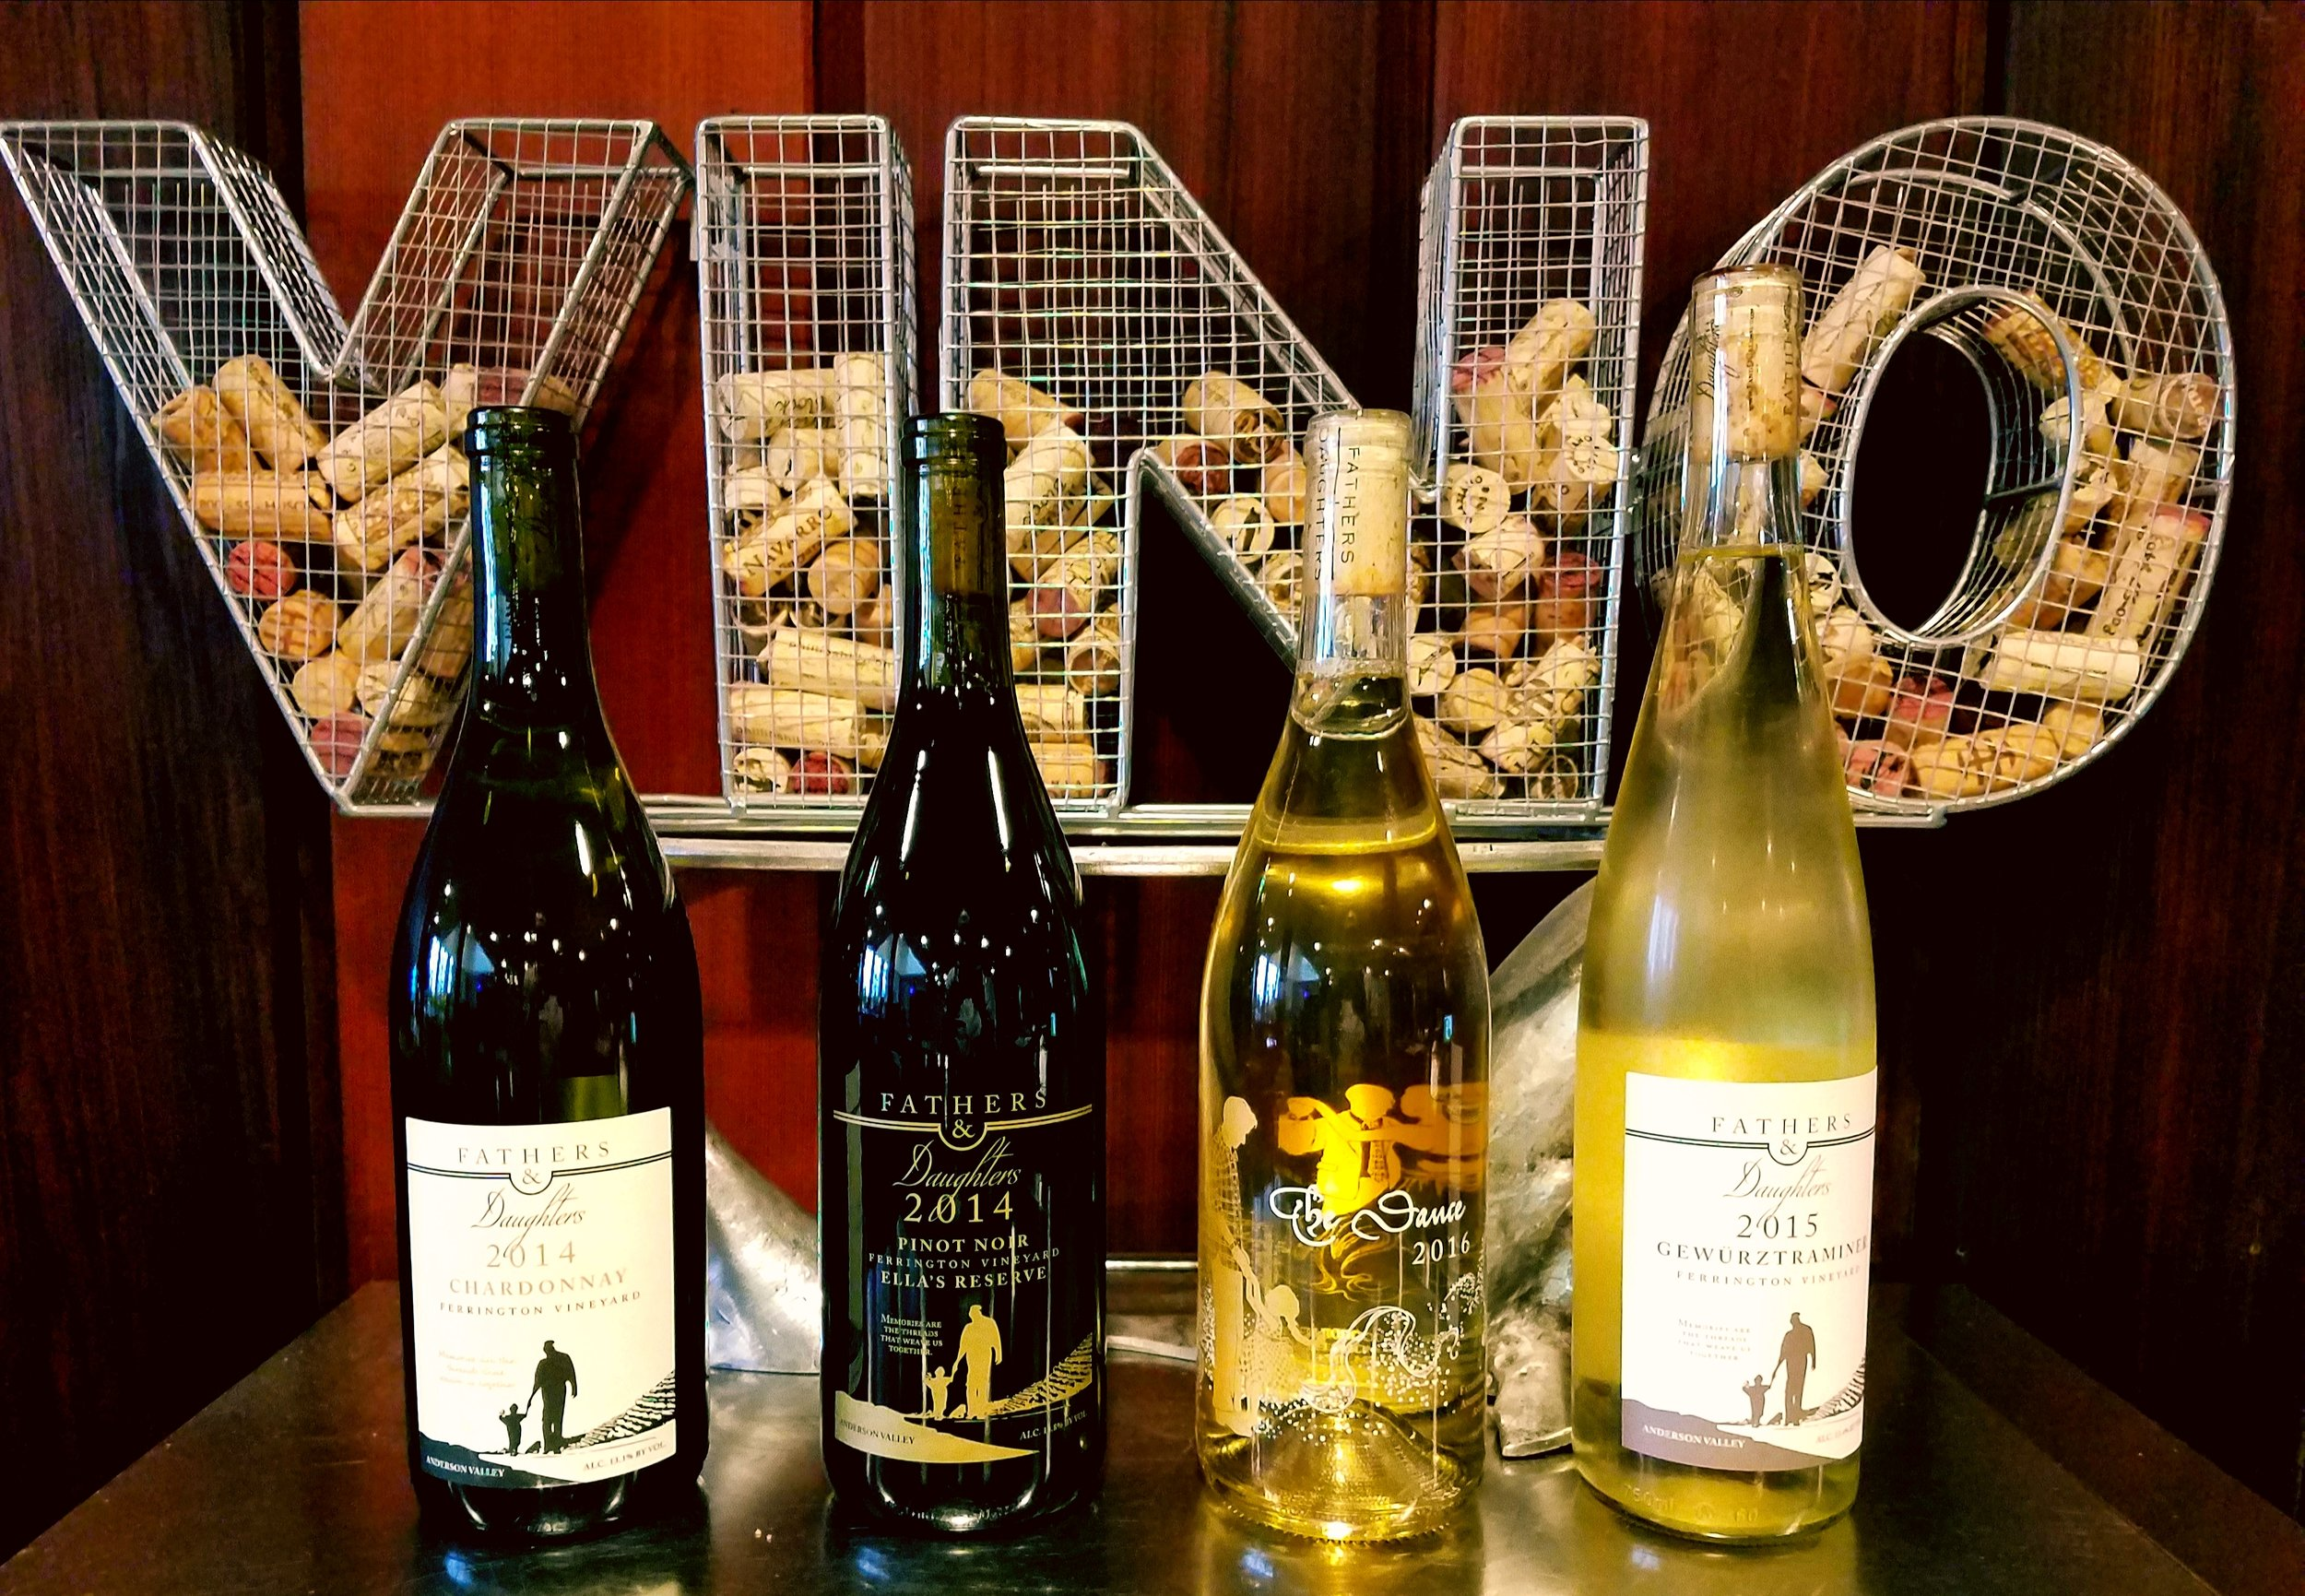 A few of our wines